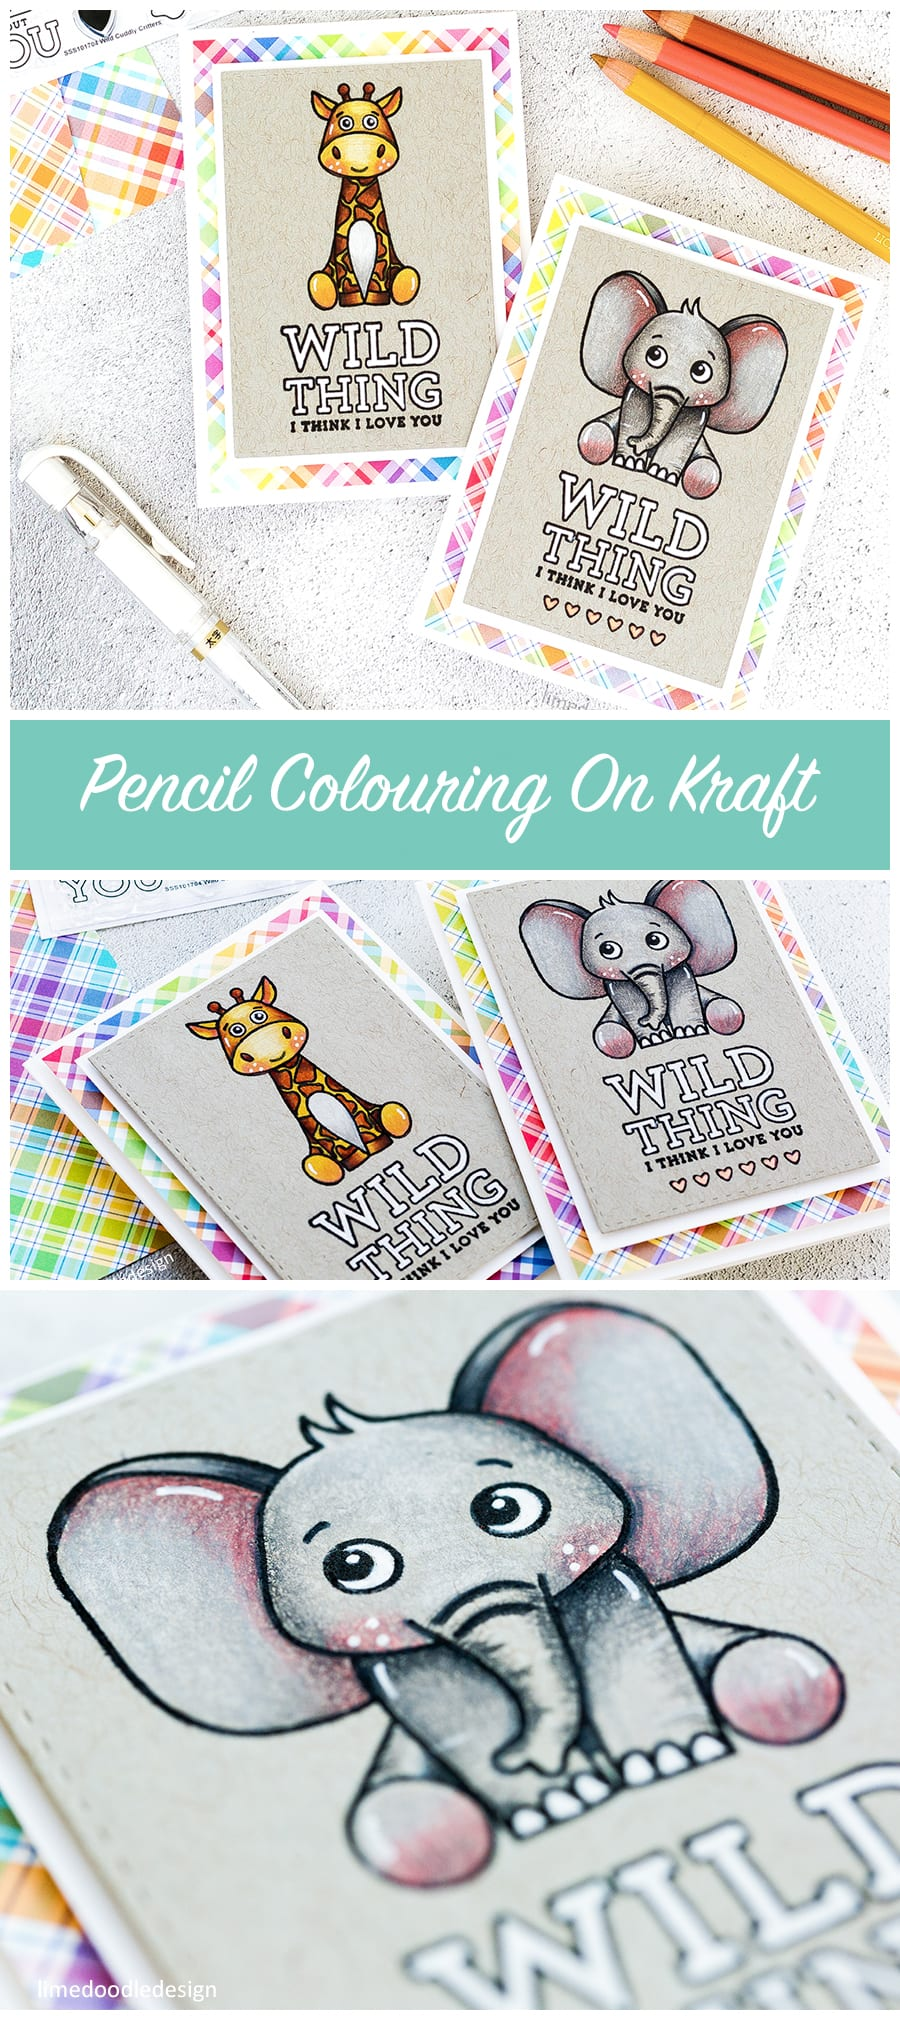 Pencil colouring on kraft cute critters cards by Debby Hughes. Find out more by clicking on the following link: http://limedoodledesign.com/2017/03/pencil-coloring-on-kraft-simon-says-stamp-card-kit/